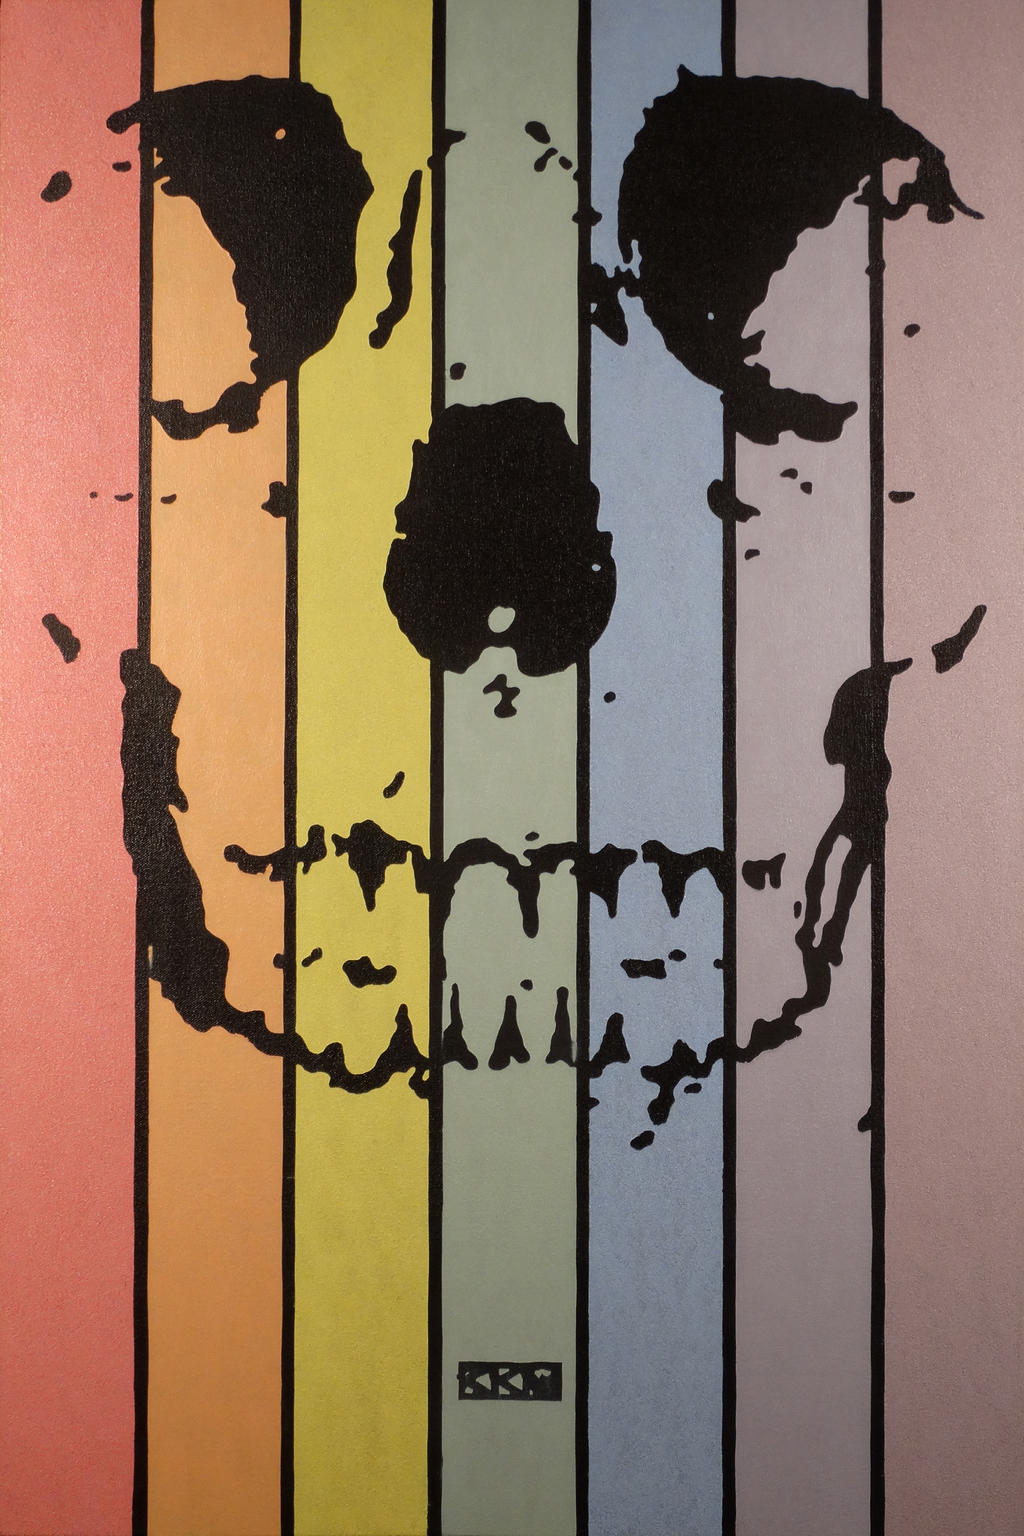 Chromatic Death by Crigger